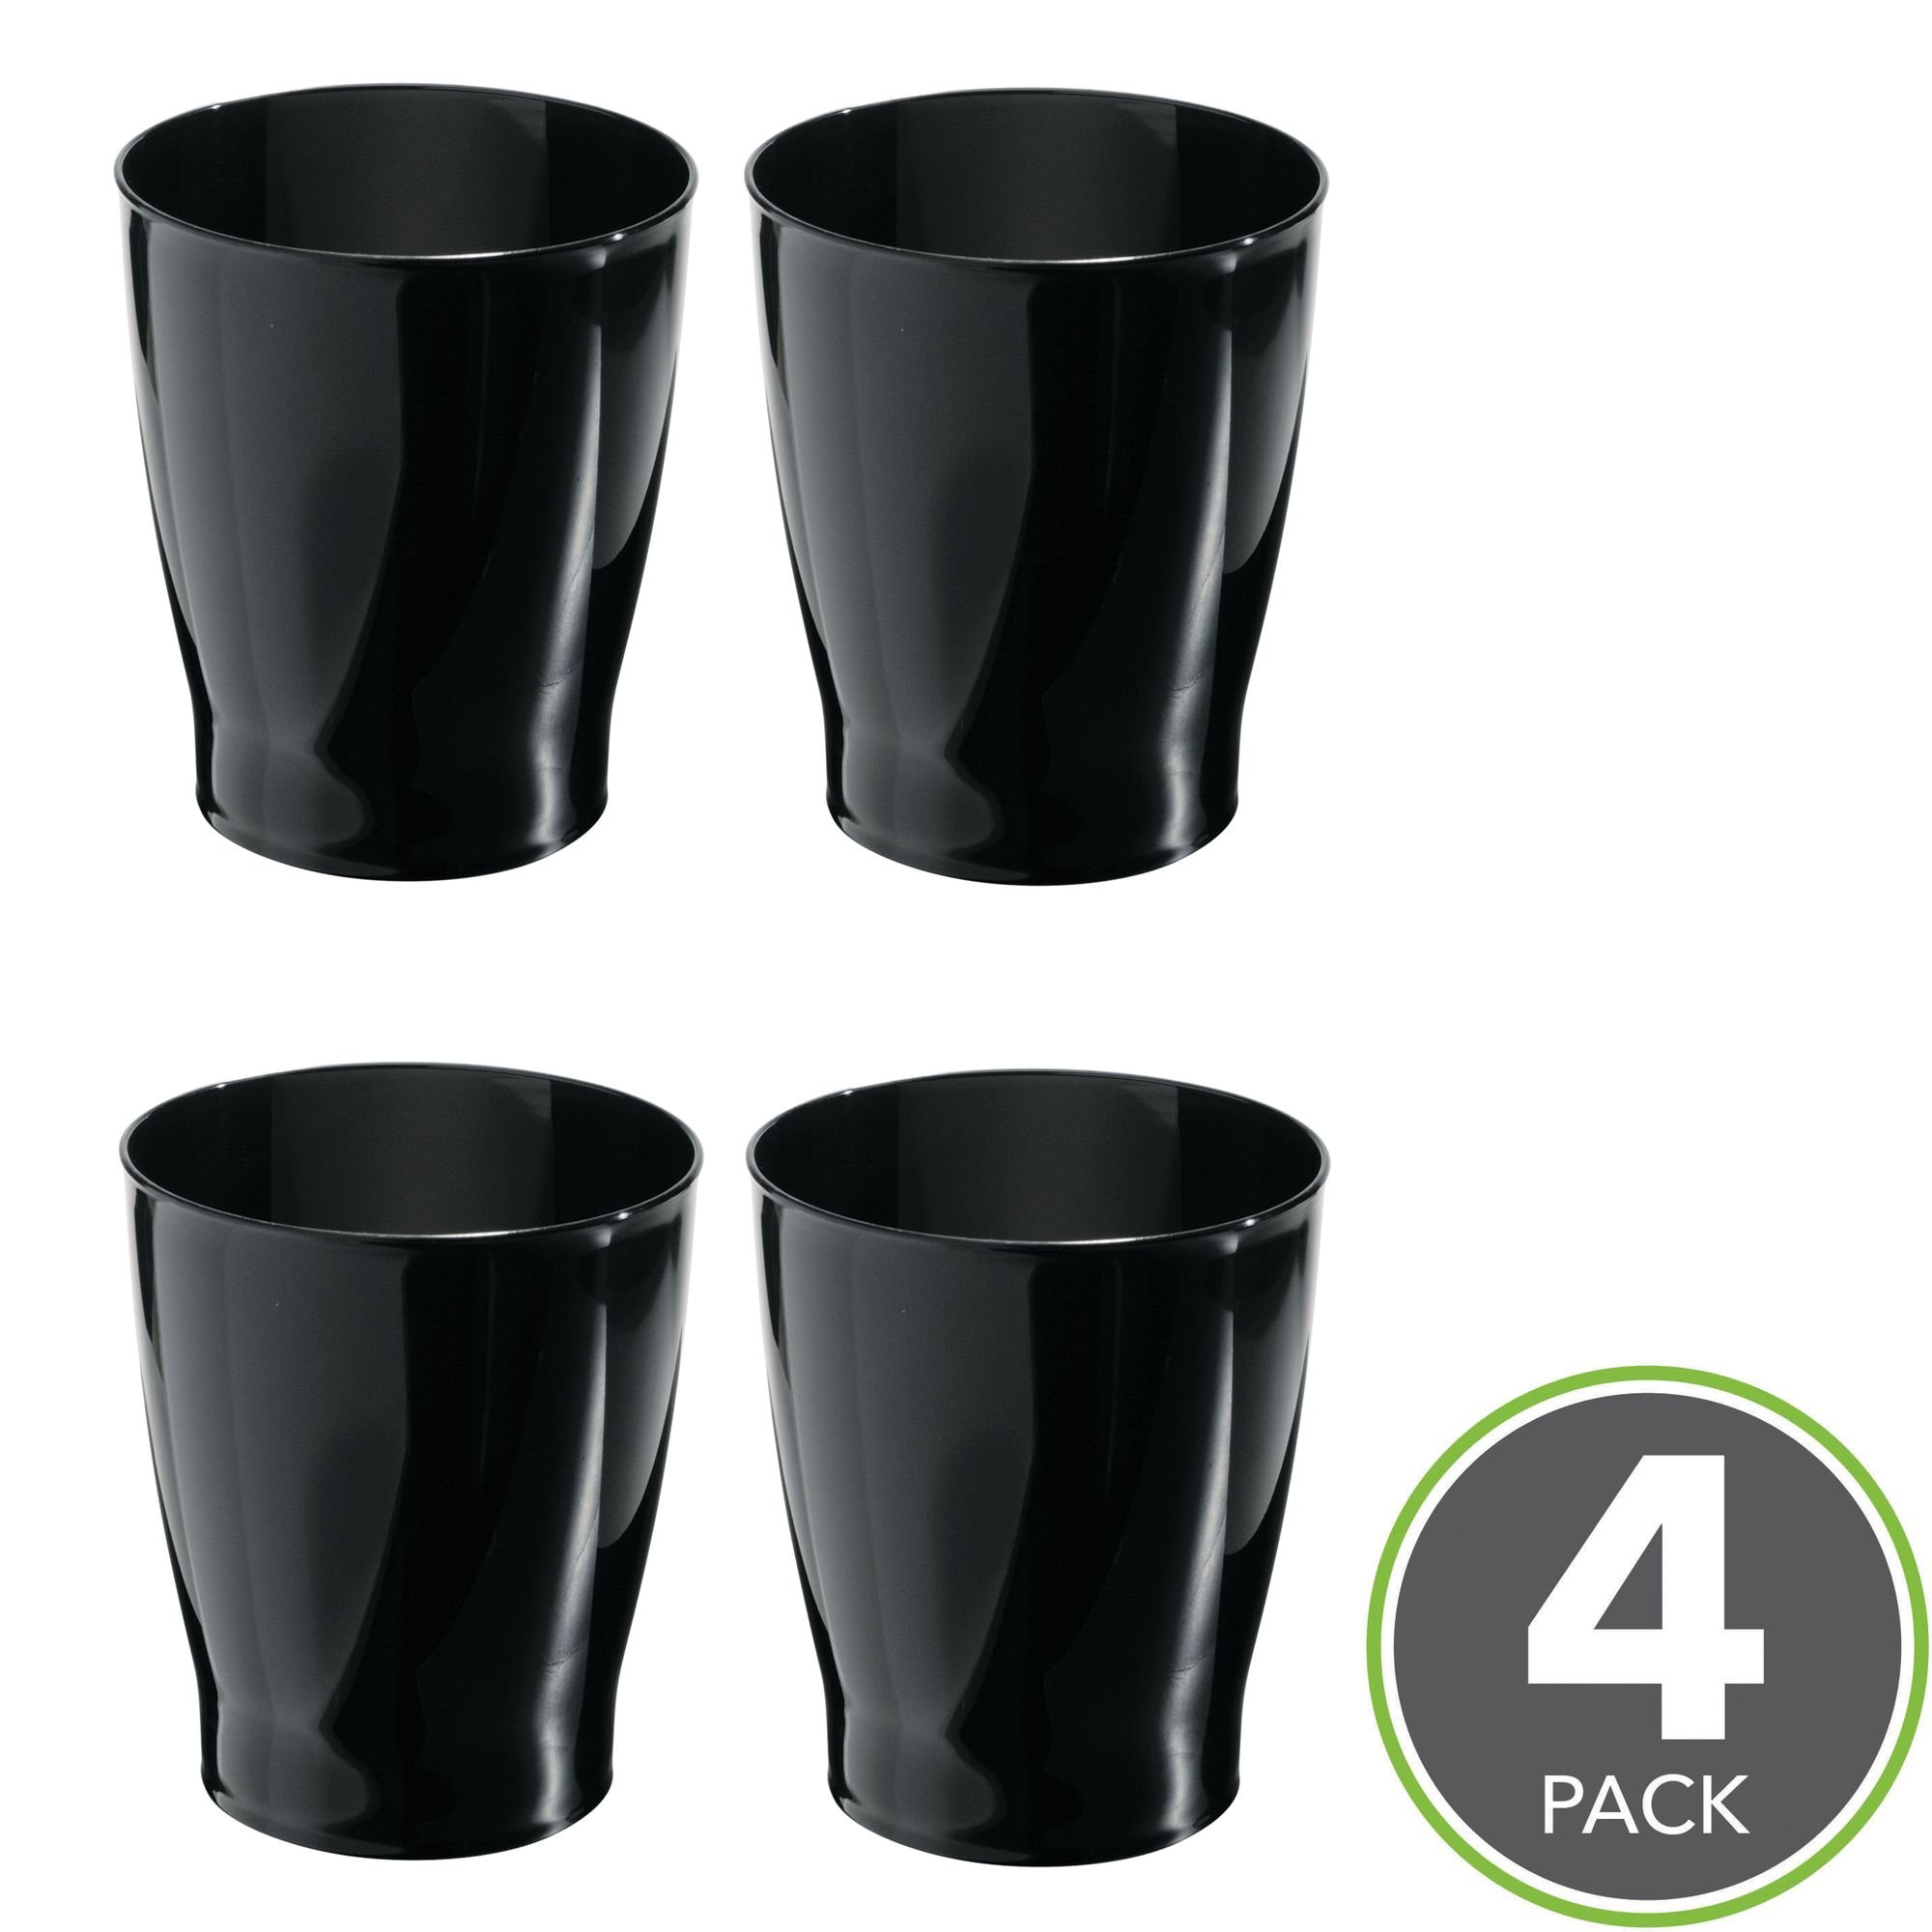 mDesign Slim Round Plastic Small Trash Can Wastebasket, Garbage Container Bin for Bathrooms, Powder Rooms, Kitchens, Home Offices, Kids Rooms - Pack of 4, Black